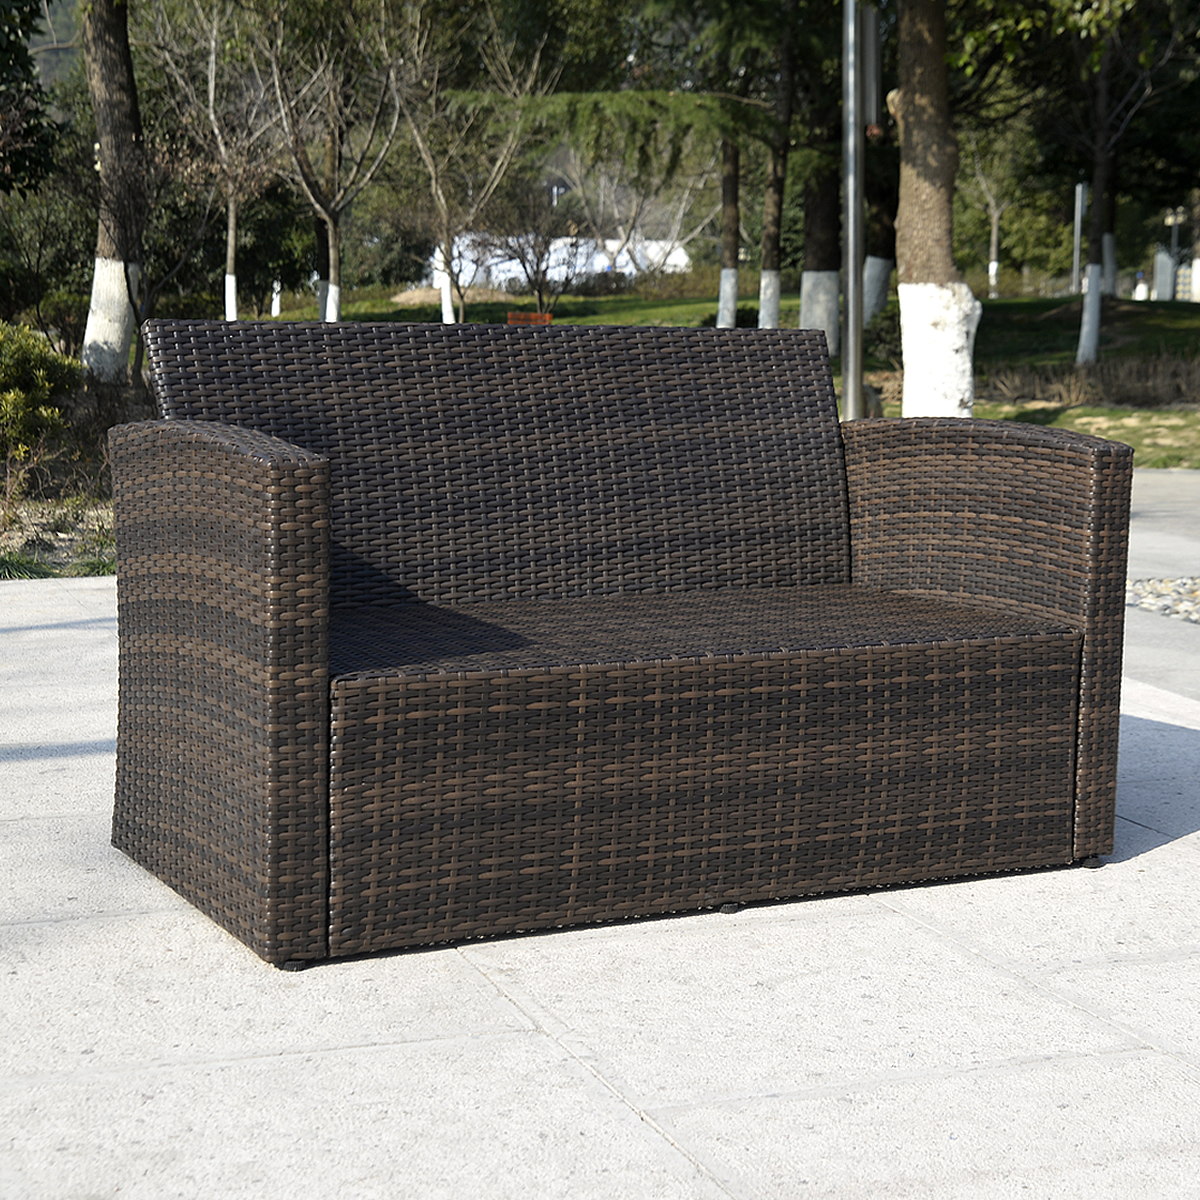 Costway 4 PCS Cushioned Wicker Patio Sofa Furniture Set Garden Lawn Seat  Gradient Brown   Walmart.com